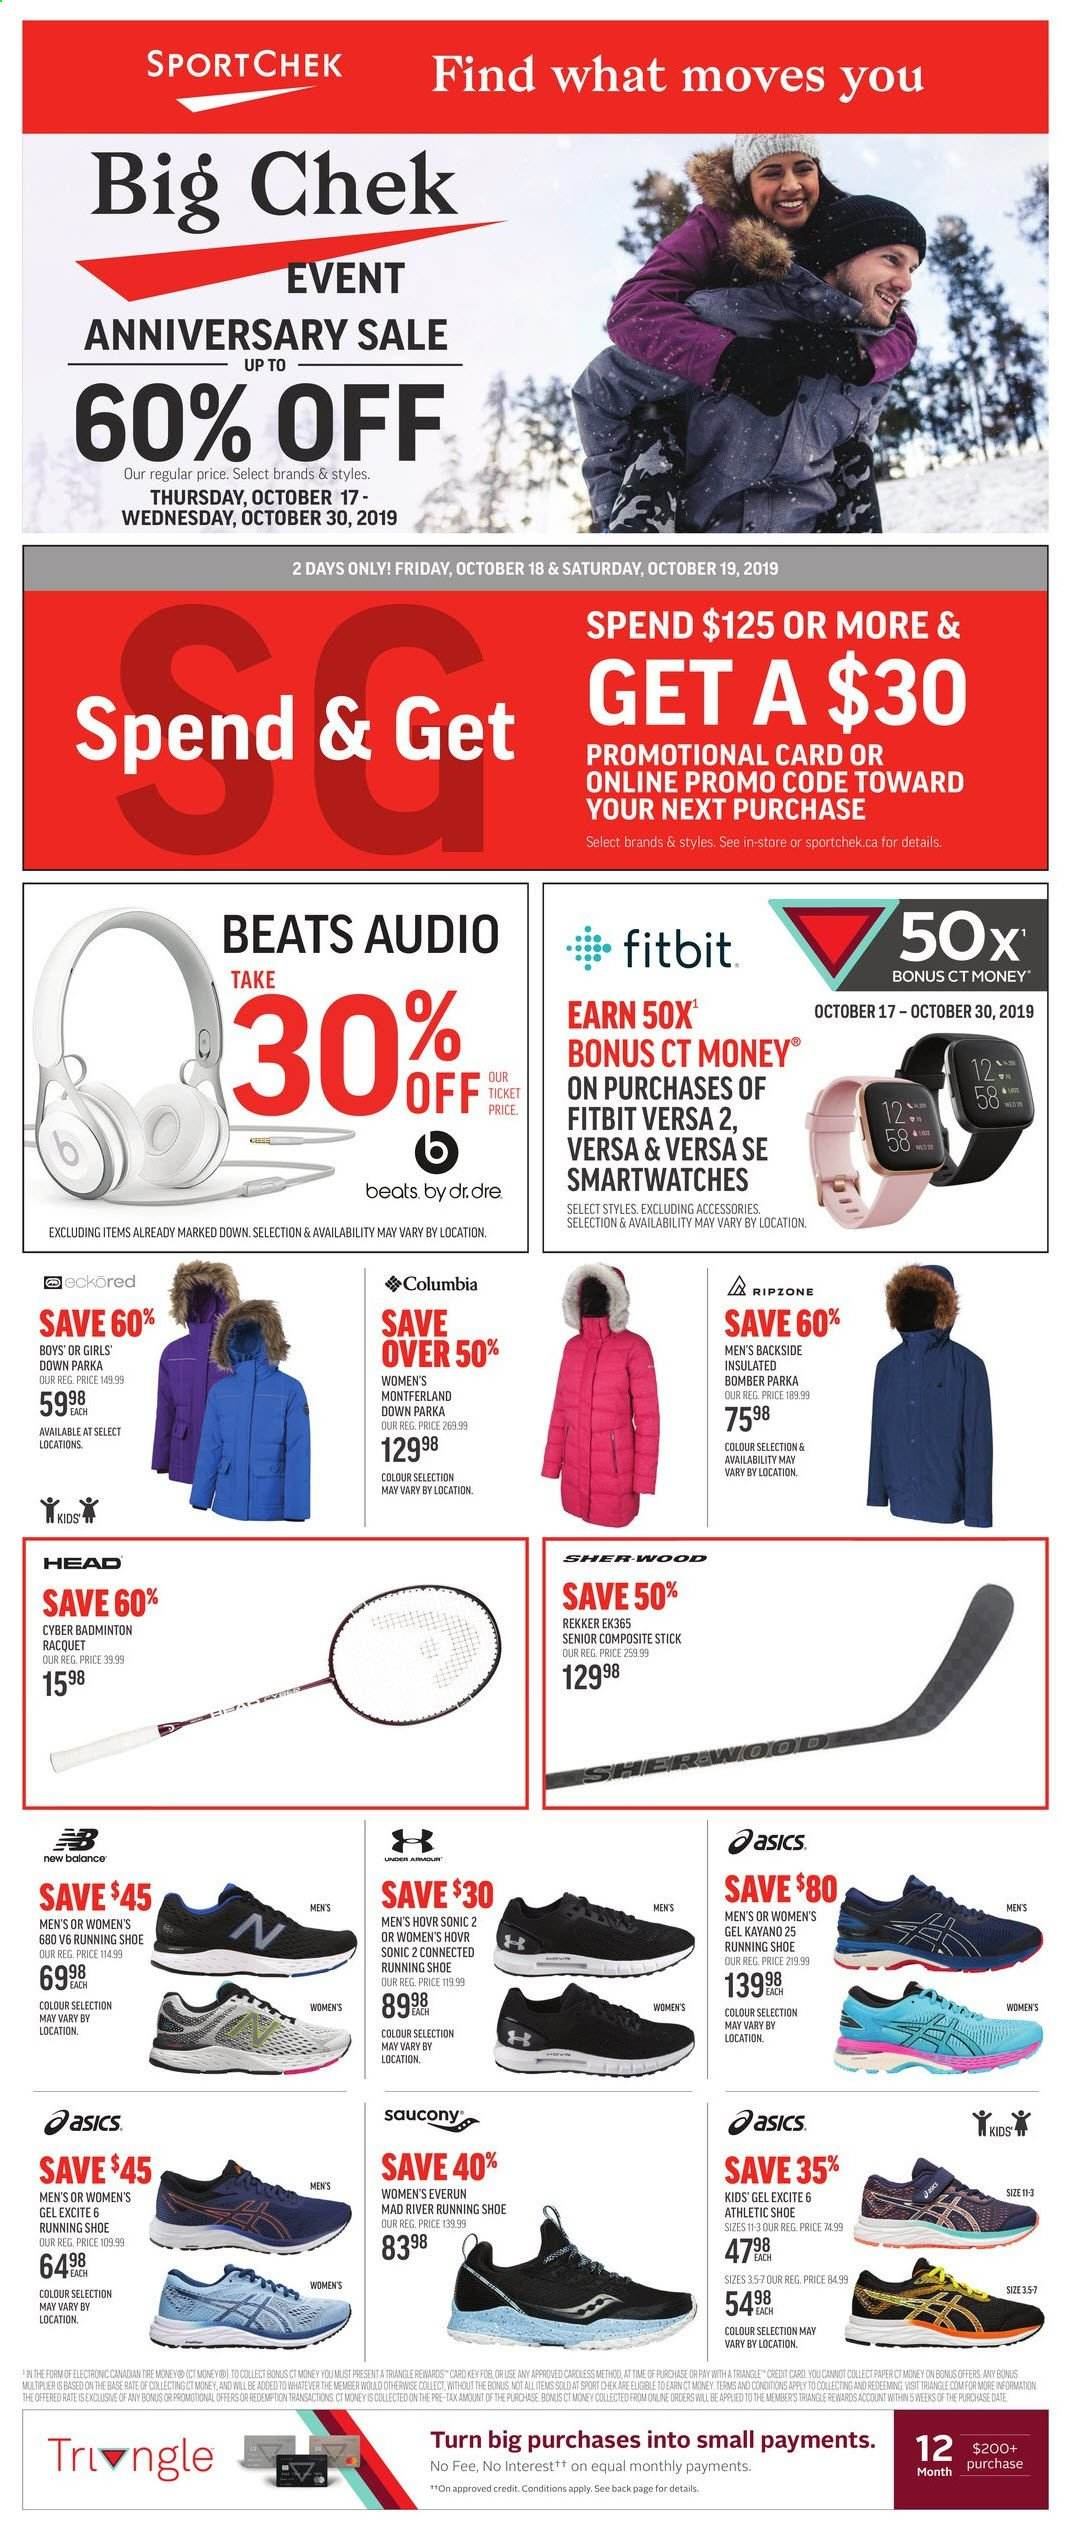 Sport Chek Flyer October 17 2019 October 30 2019 Page 1 Canadian Flyers